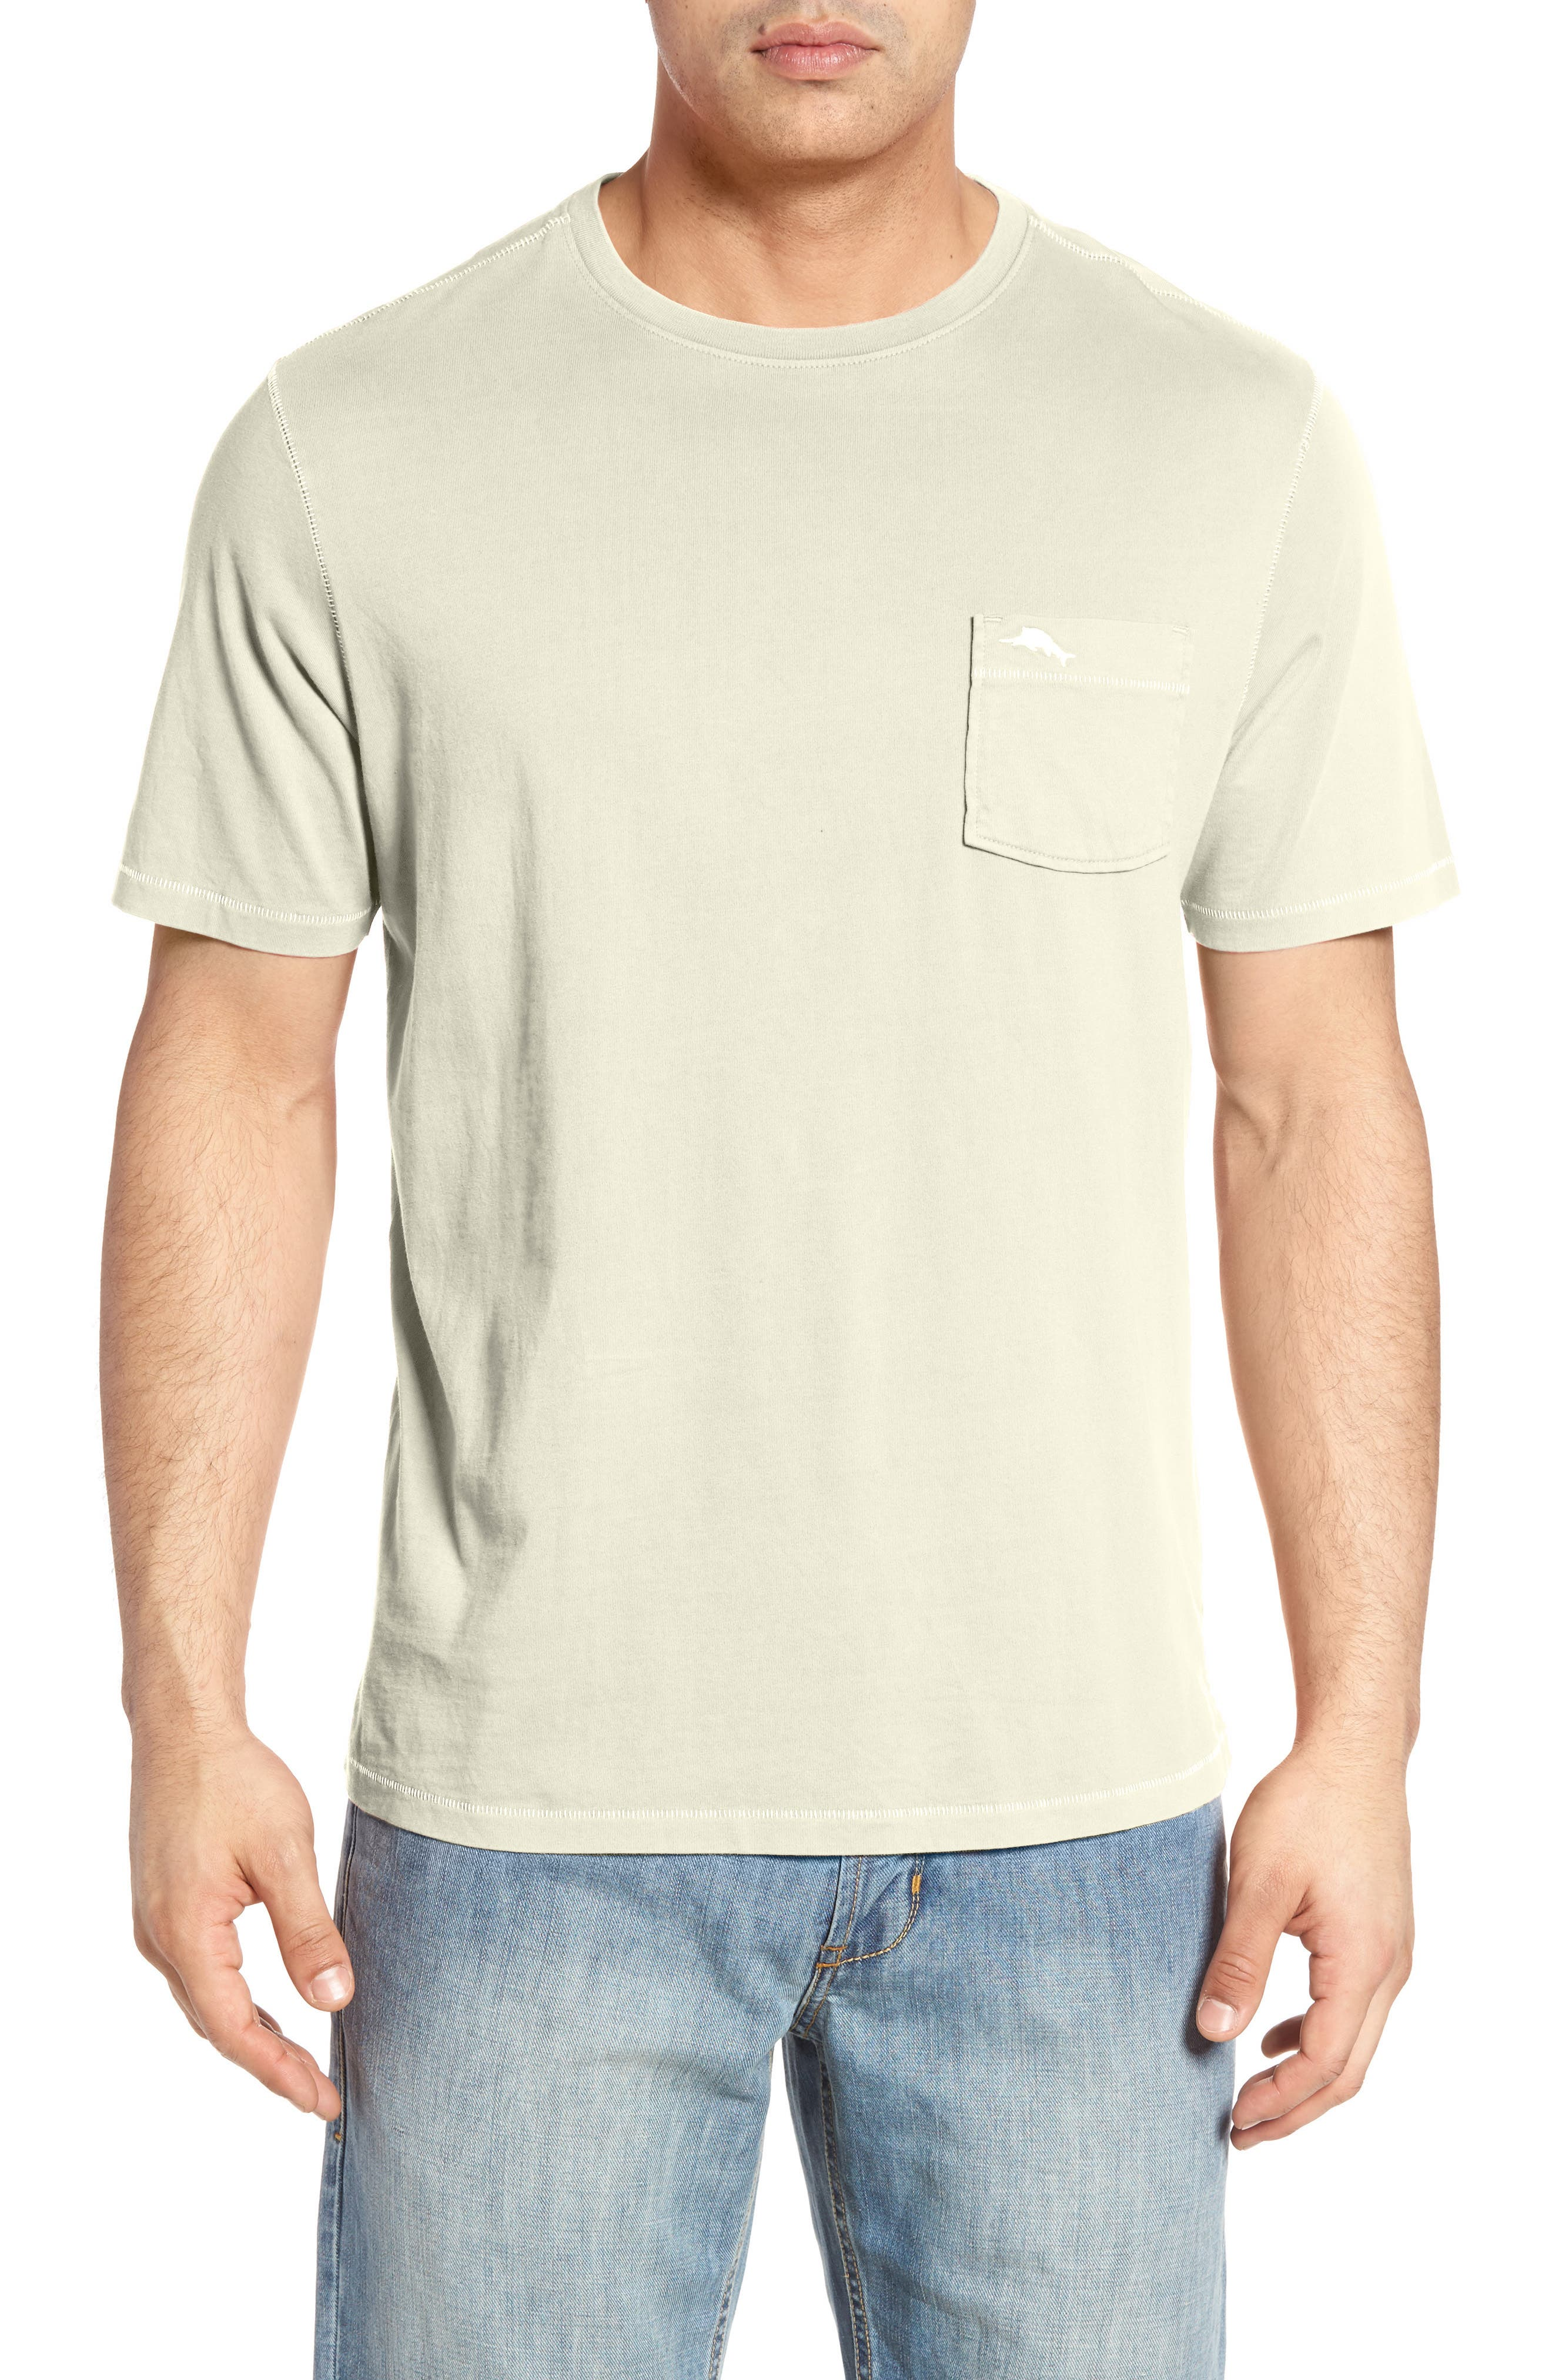 'New Bahama Reef' Island Modern Fit Pima Cotton Pocket T-Shirt,                         Main,                         color, Coconut